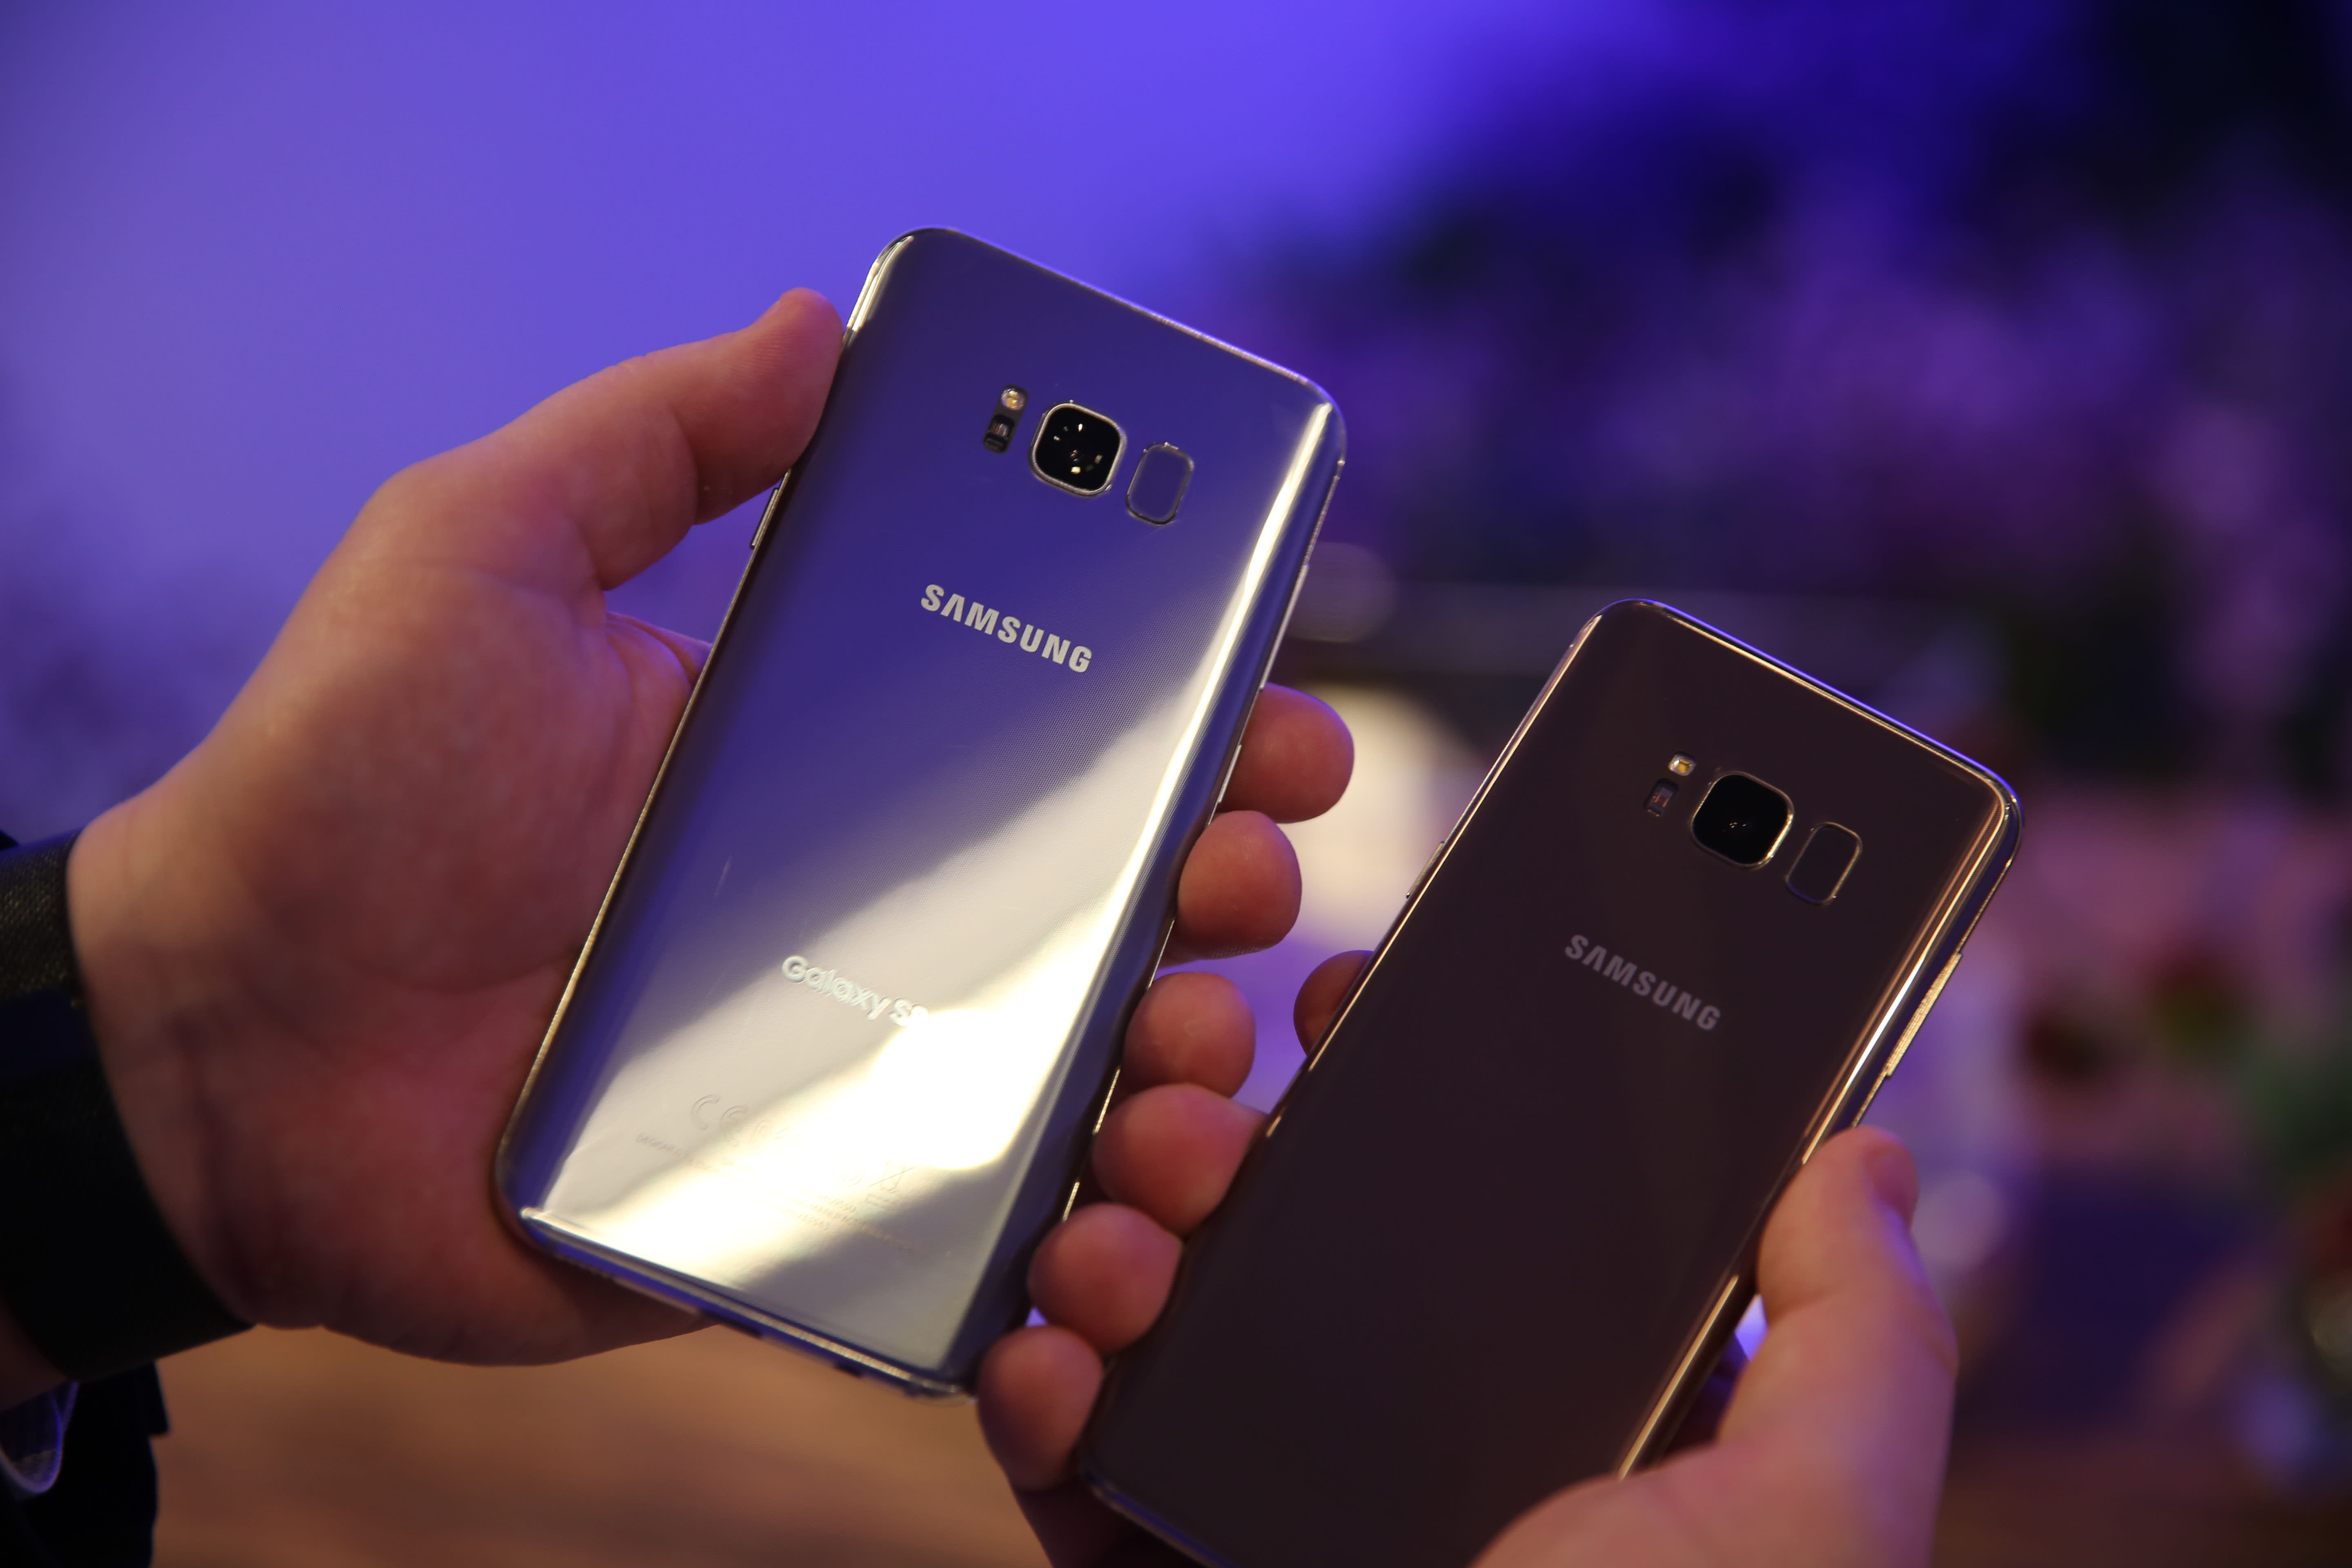 dd4216af21 Samsung Galaxy S8 launches with its own Apple Siri rival called Bixby